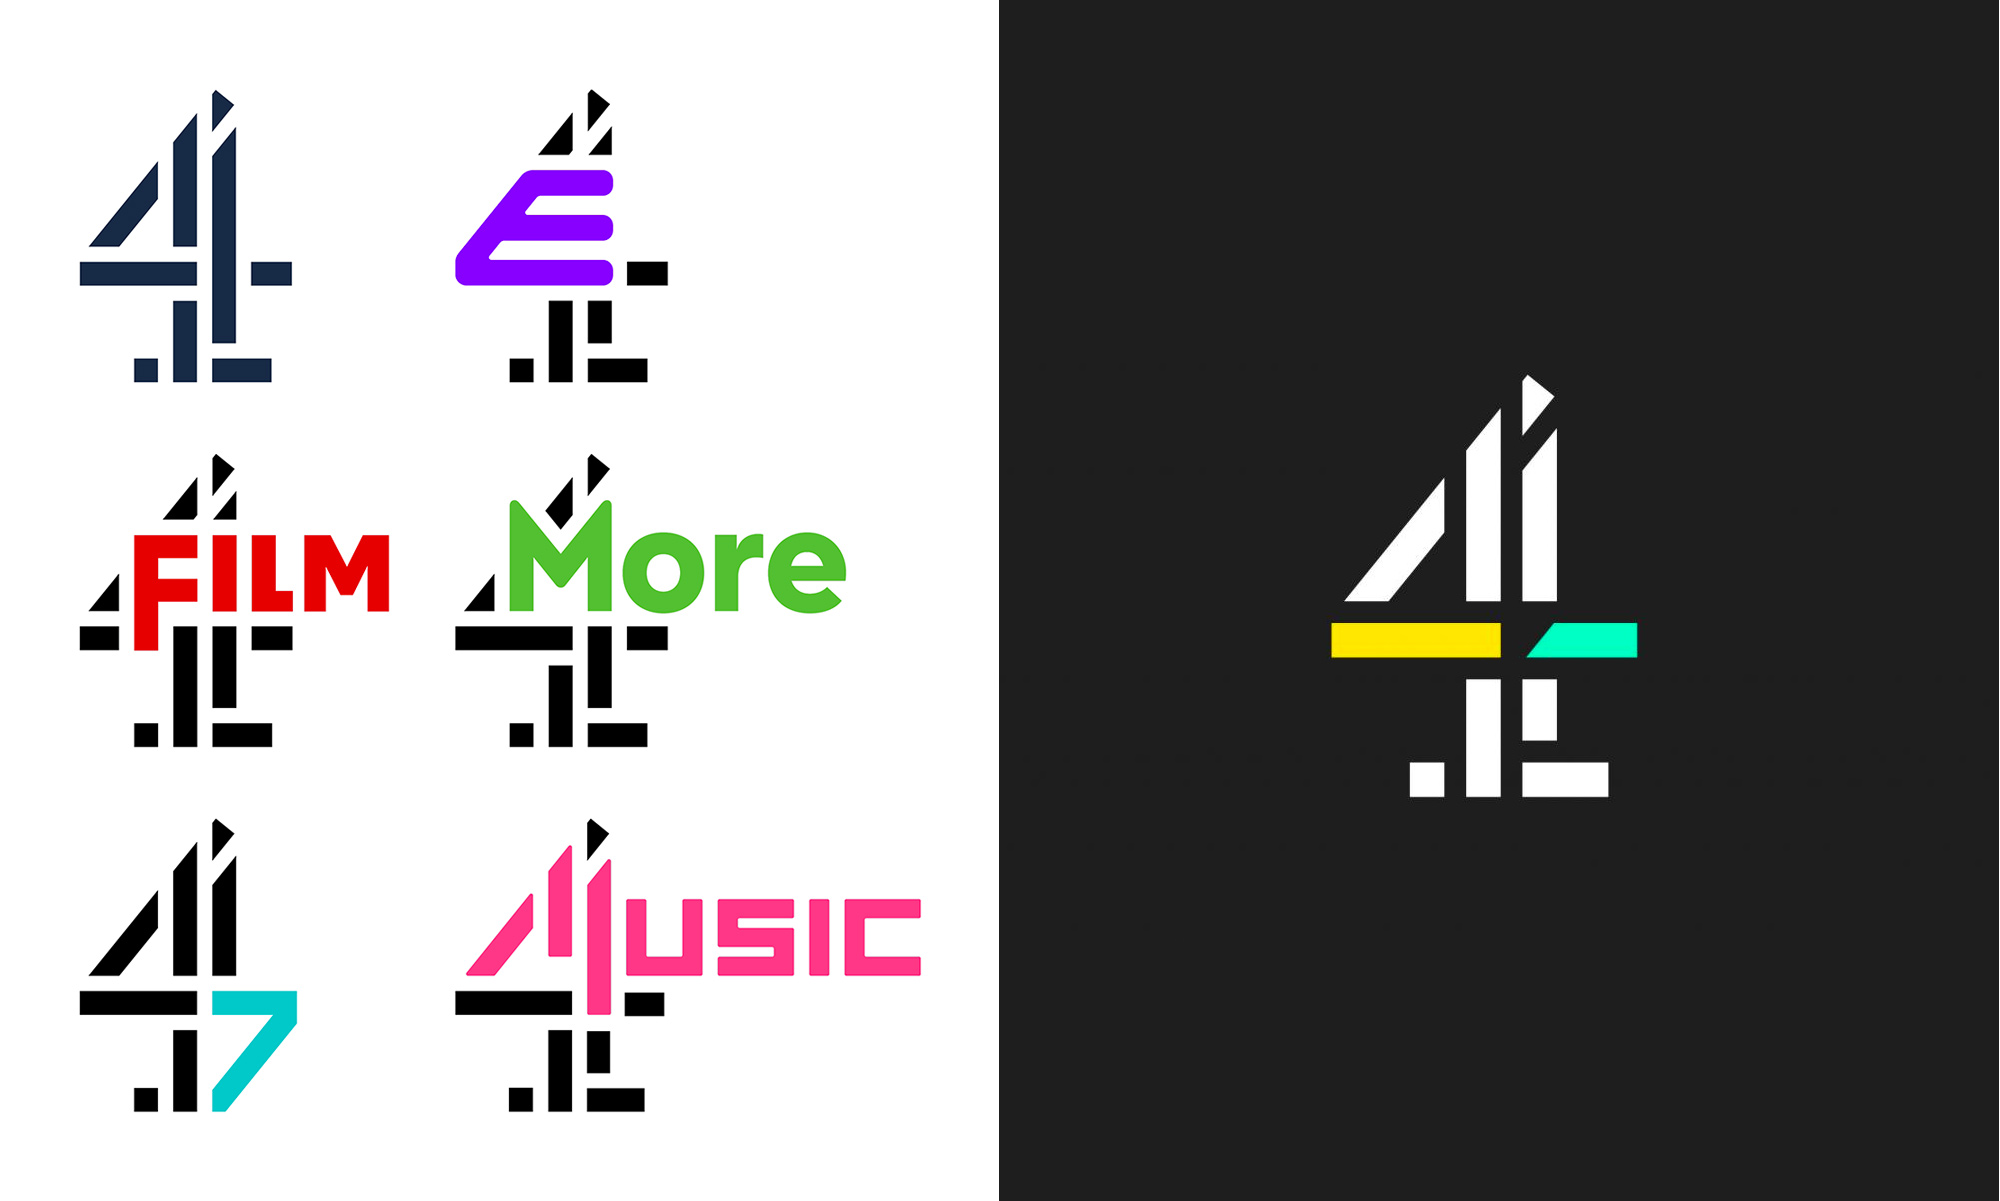 New Logo and Identity for All 4 by DixonBaxi and 4creative